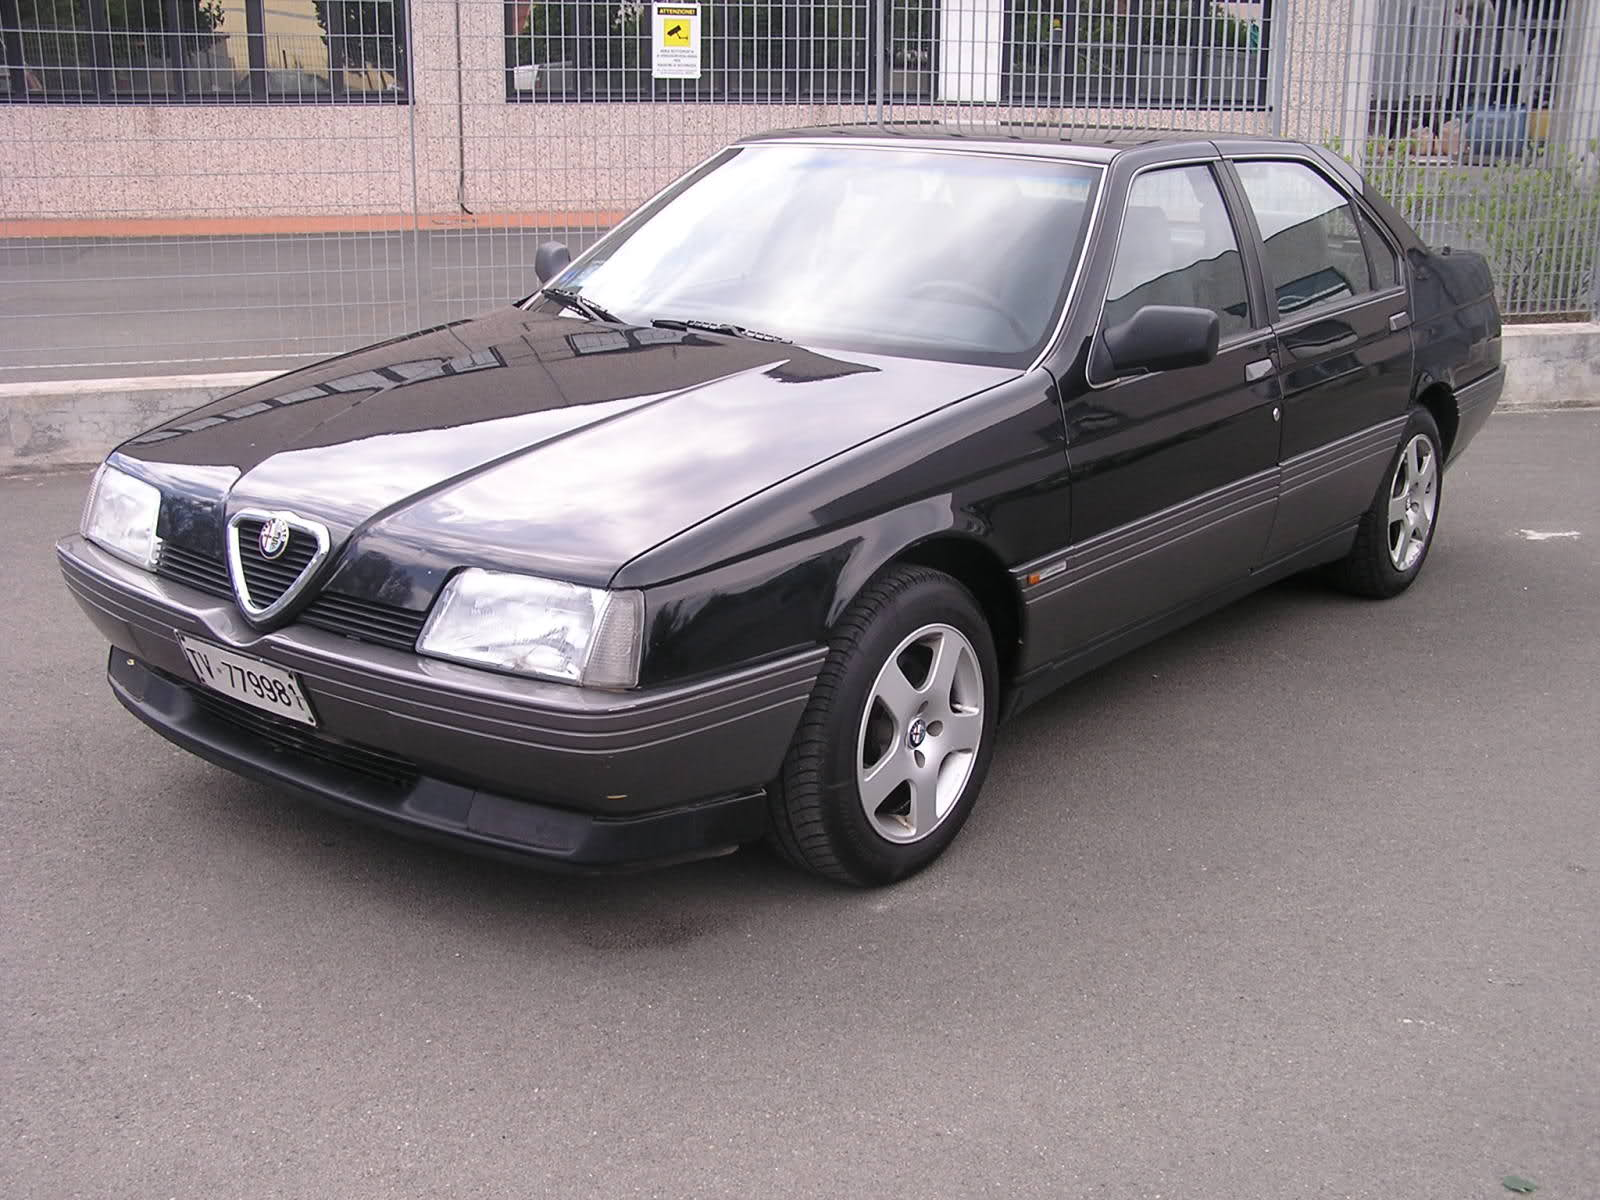 foto Alfa 164 - 2.0 Twin Spark - Lusso - Nero lucido - 1989 - SP - ASI - {attachcounter}